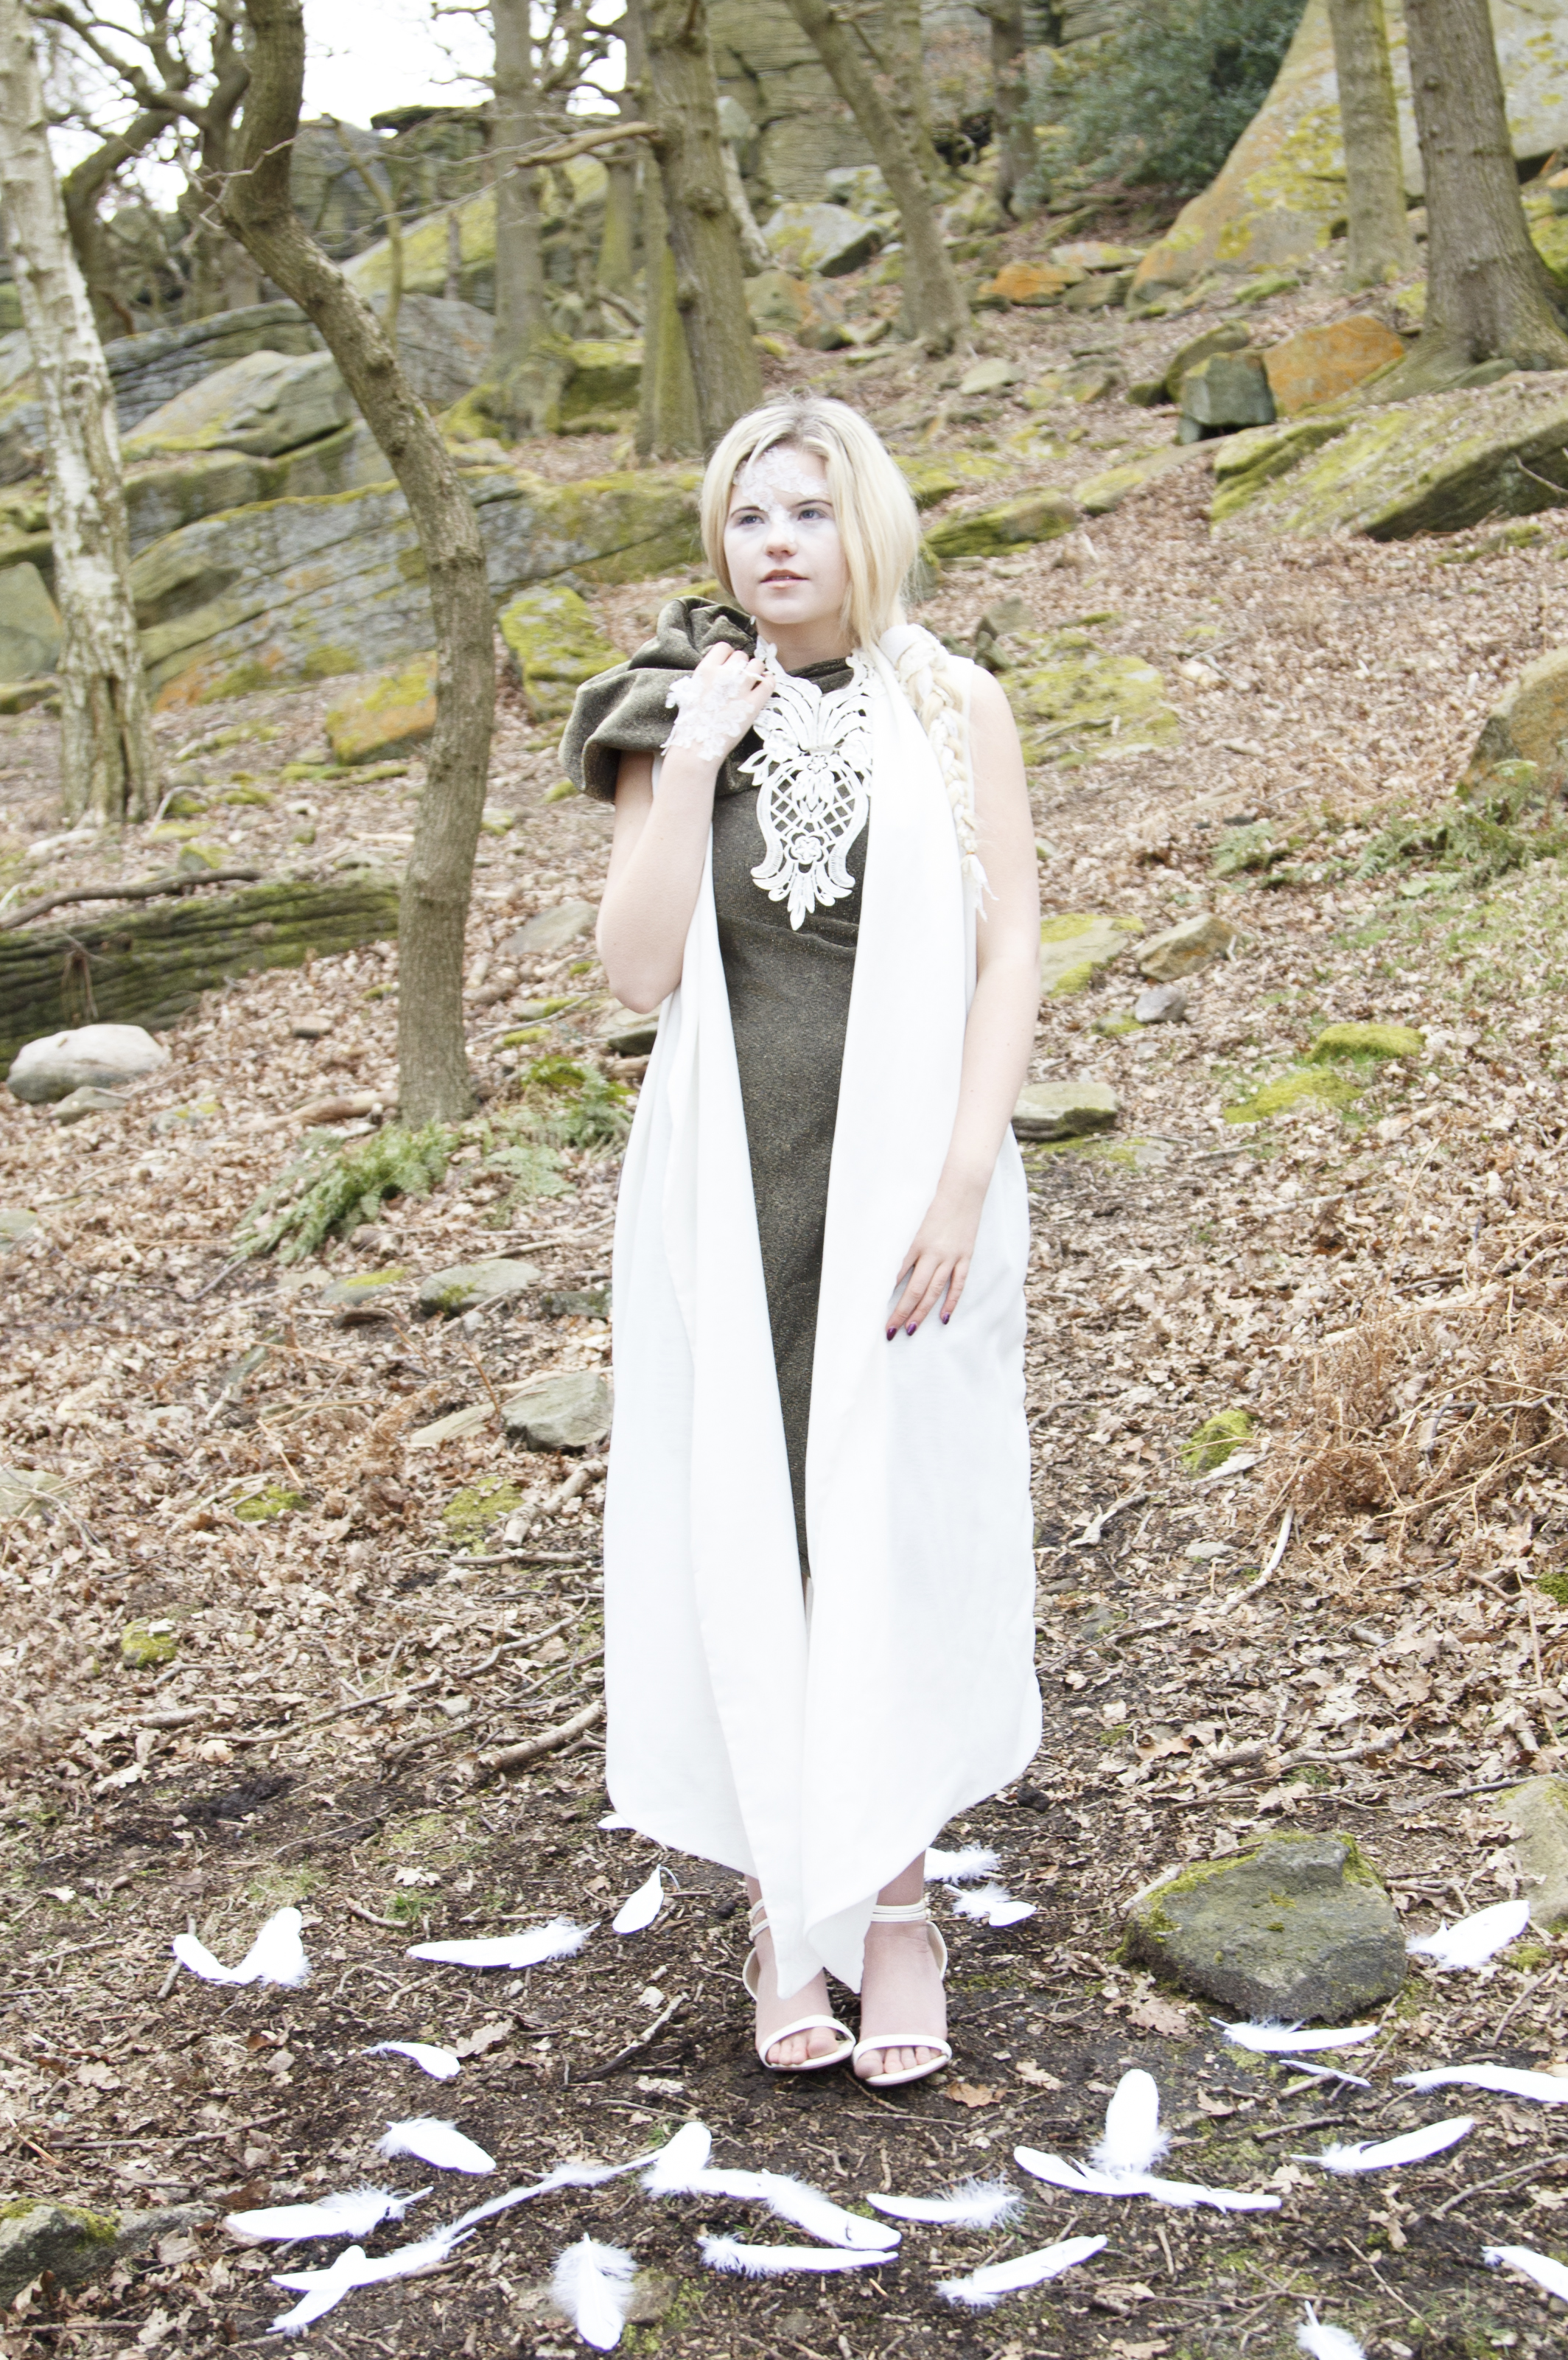 zaramia-ava-zaramiaava-leeds-fashion-designer-ethical-sustainable-smoke-versatile-drape-wrap-gold-cowl-white-dress-styling-location-womenswear-models-photoshoot-location-lace-2